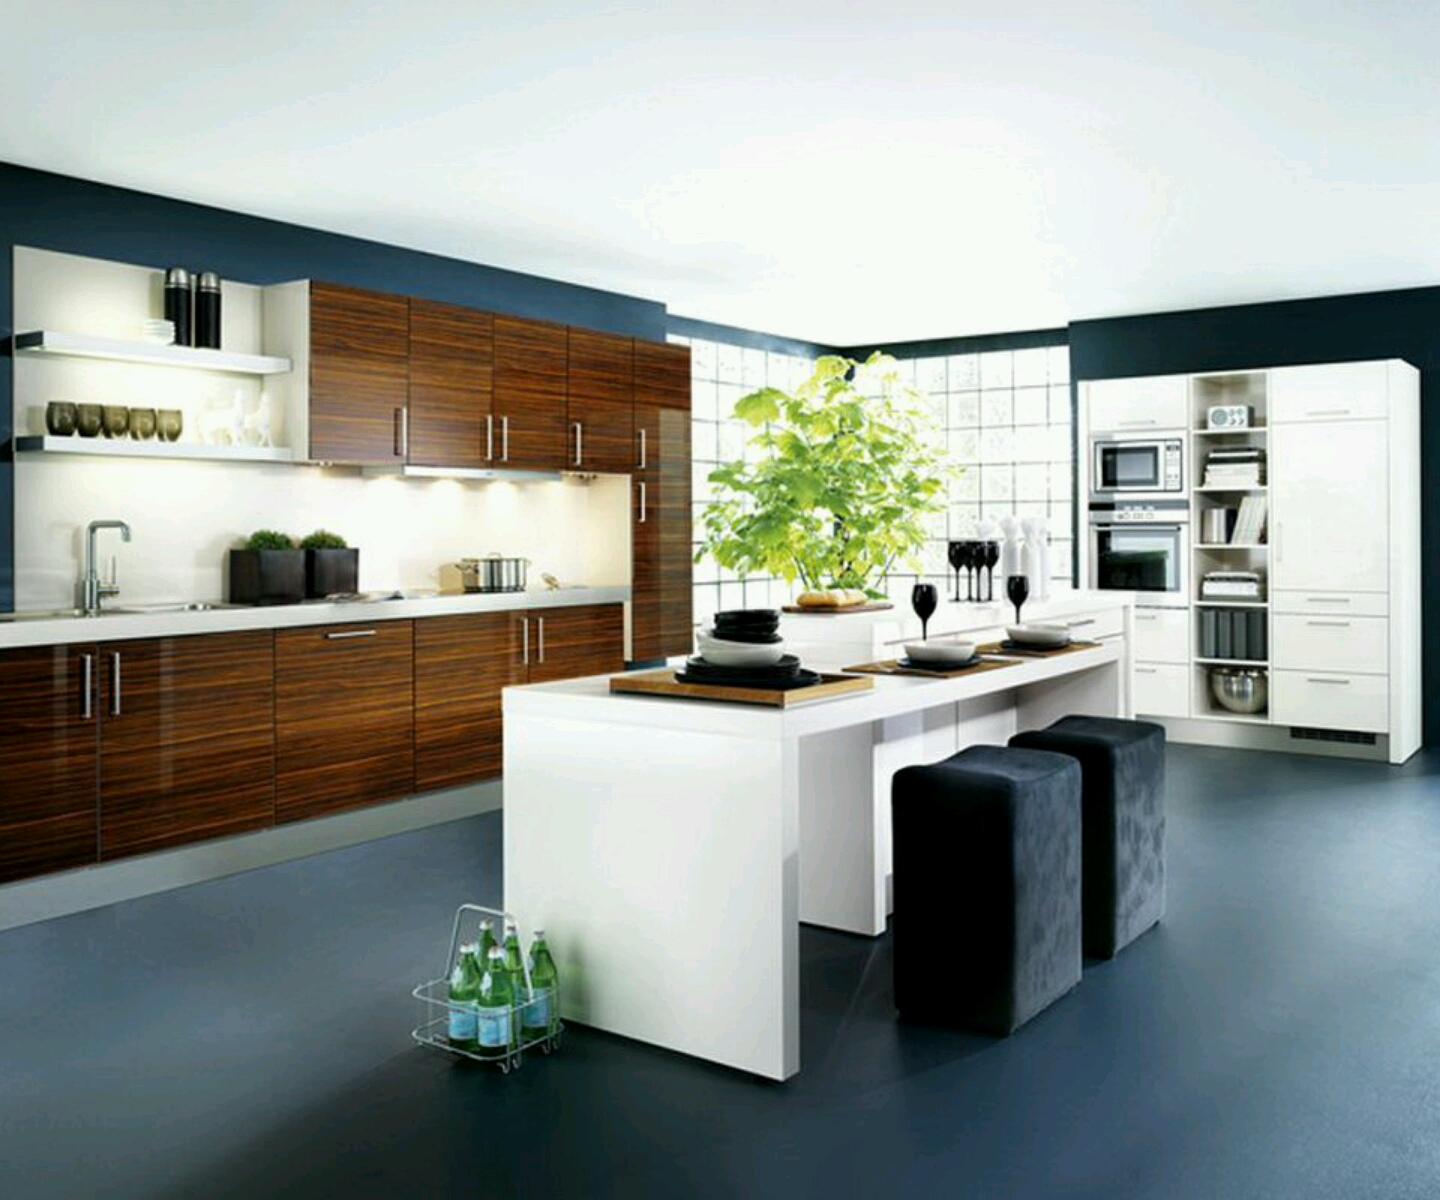 new kitchen designs new home designs kitchen cabinets designs modern 596